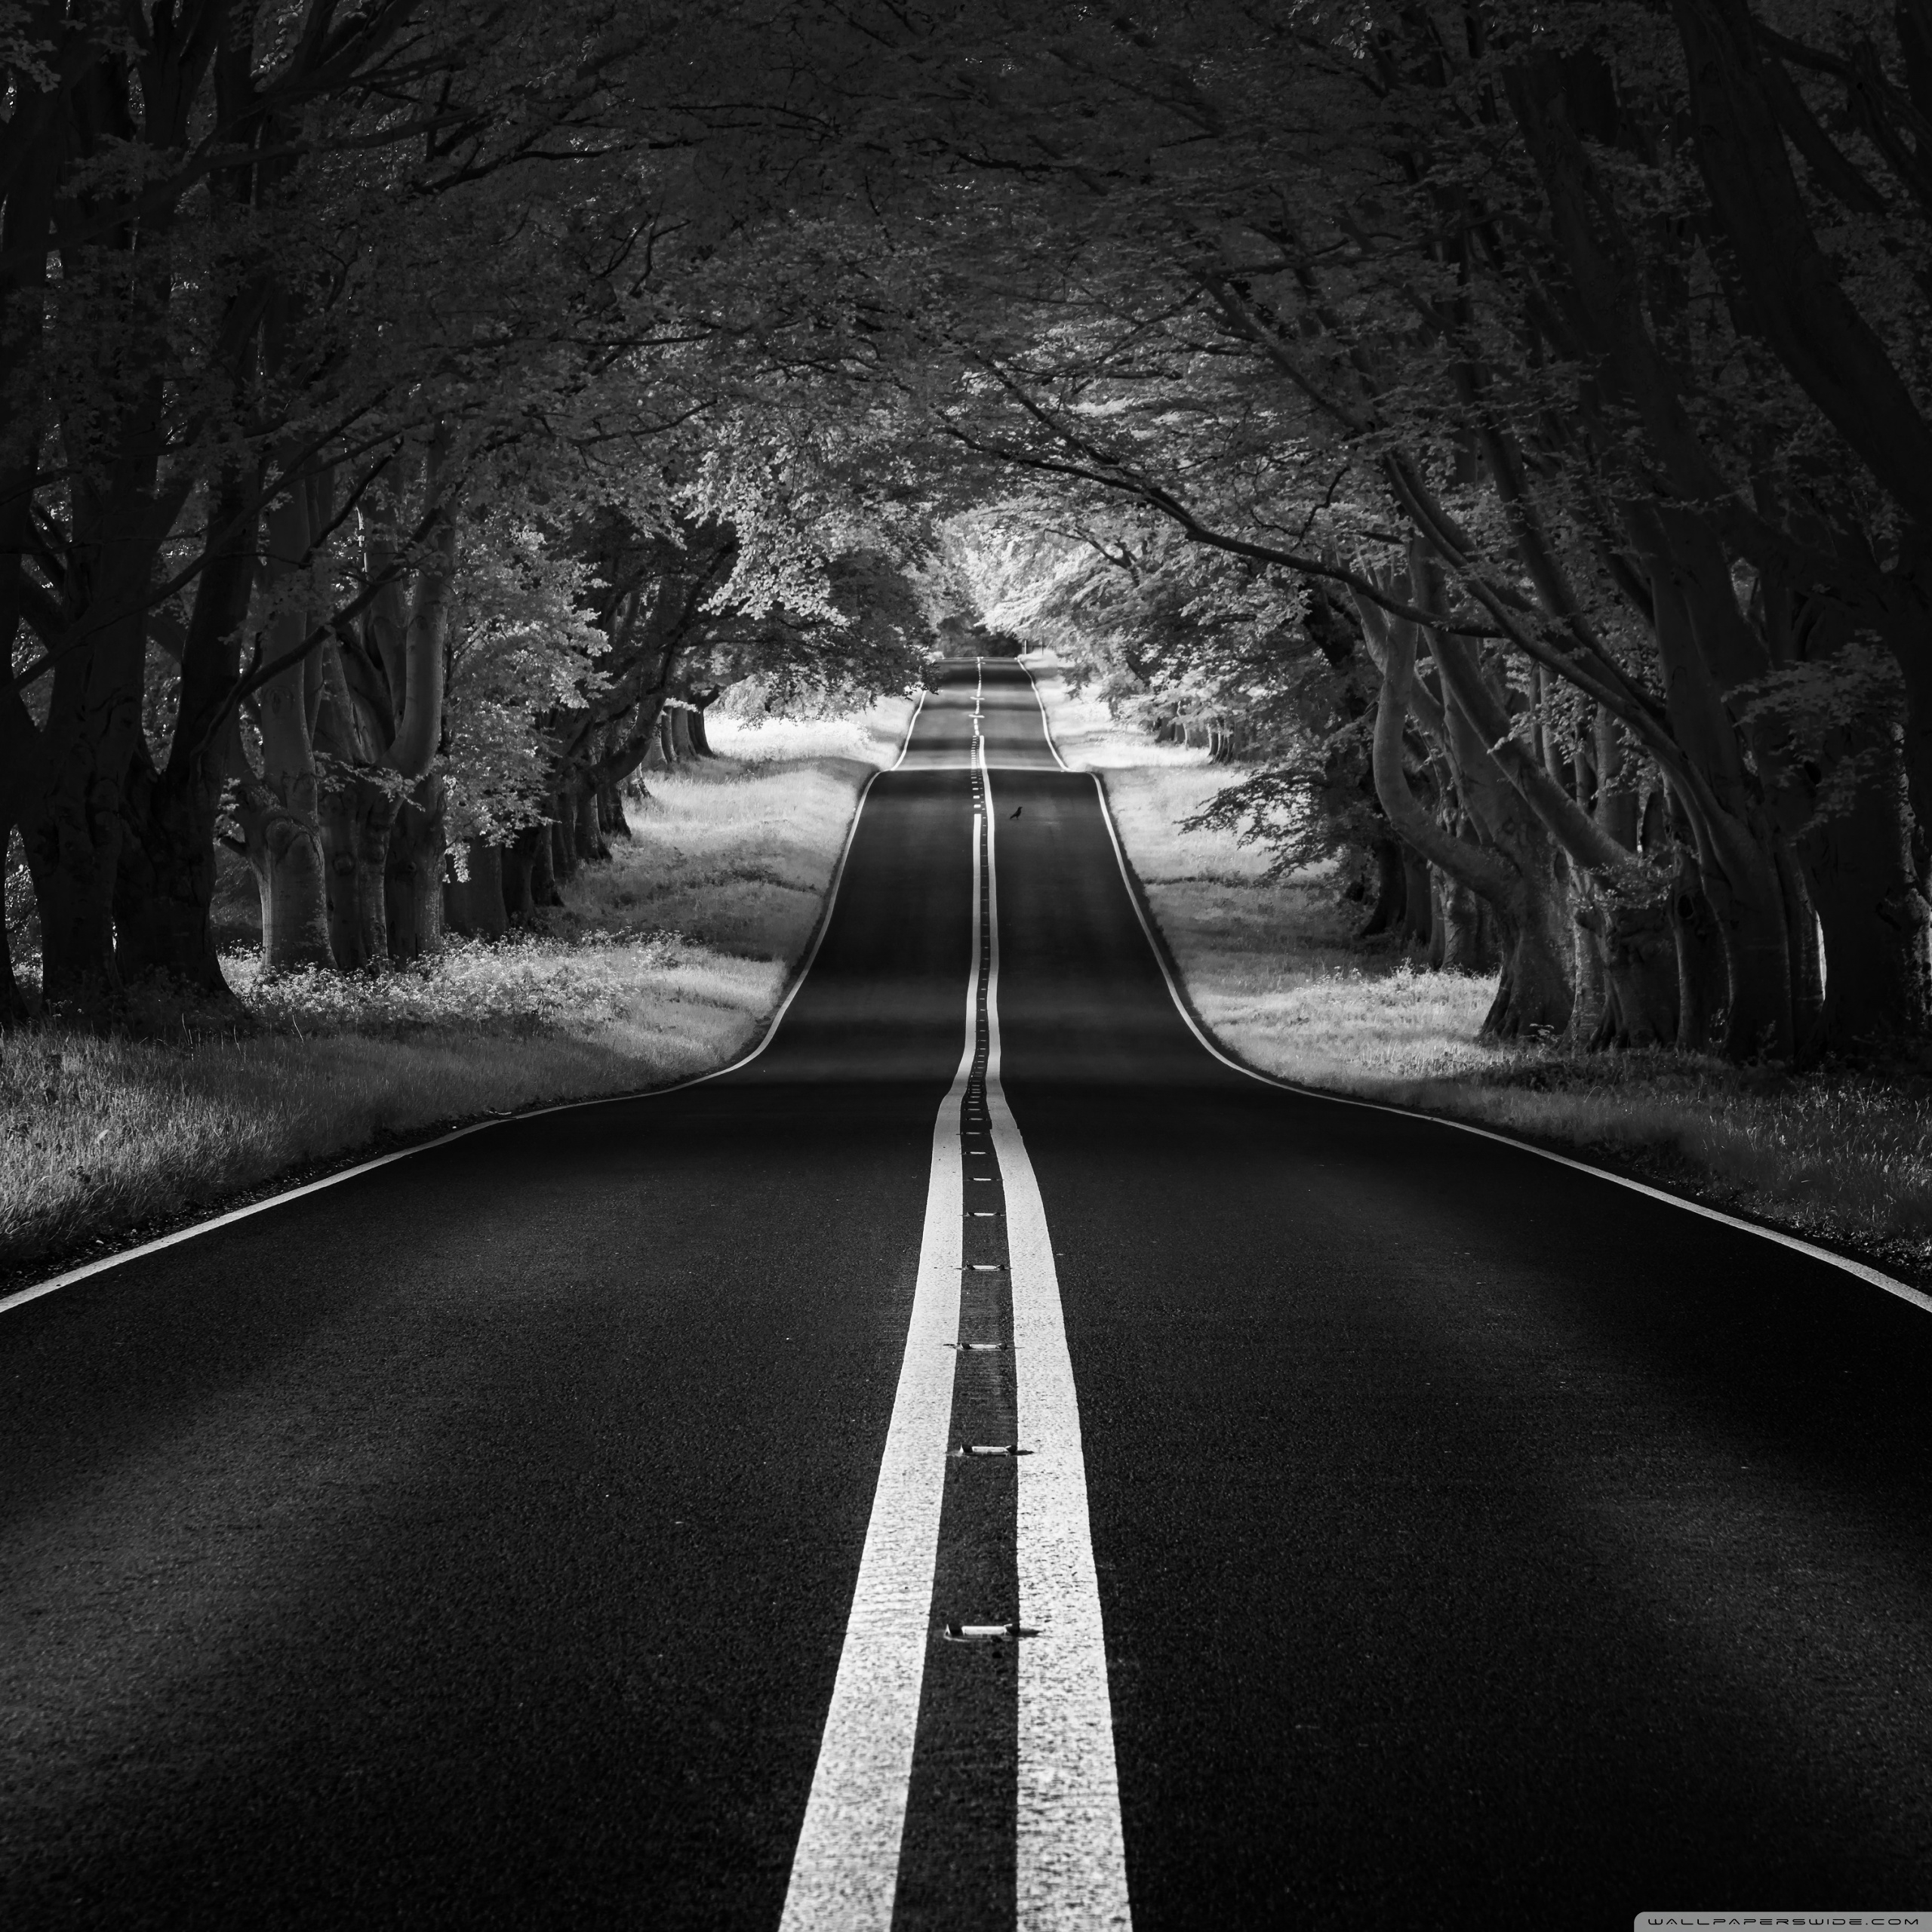 road landscape aesthetic black and white wallpaper 2560x2560